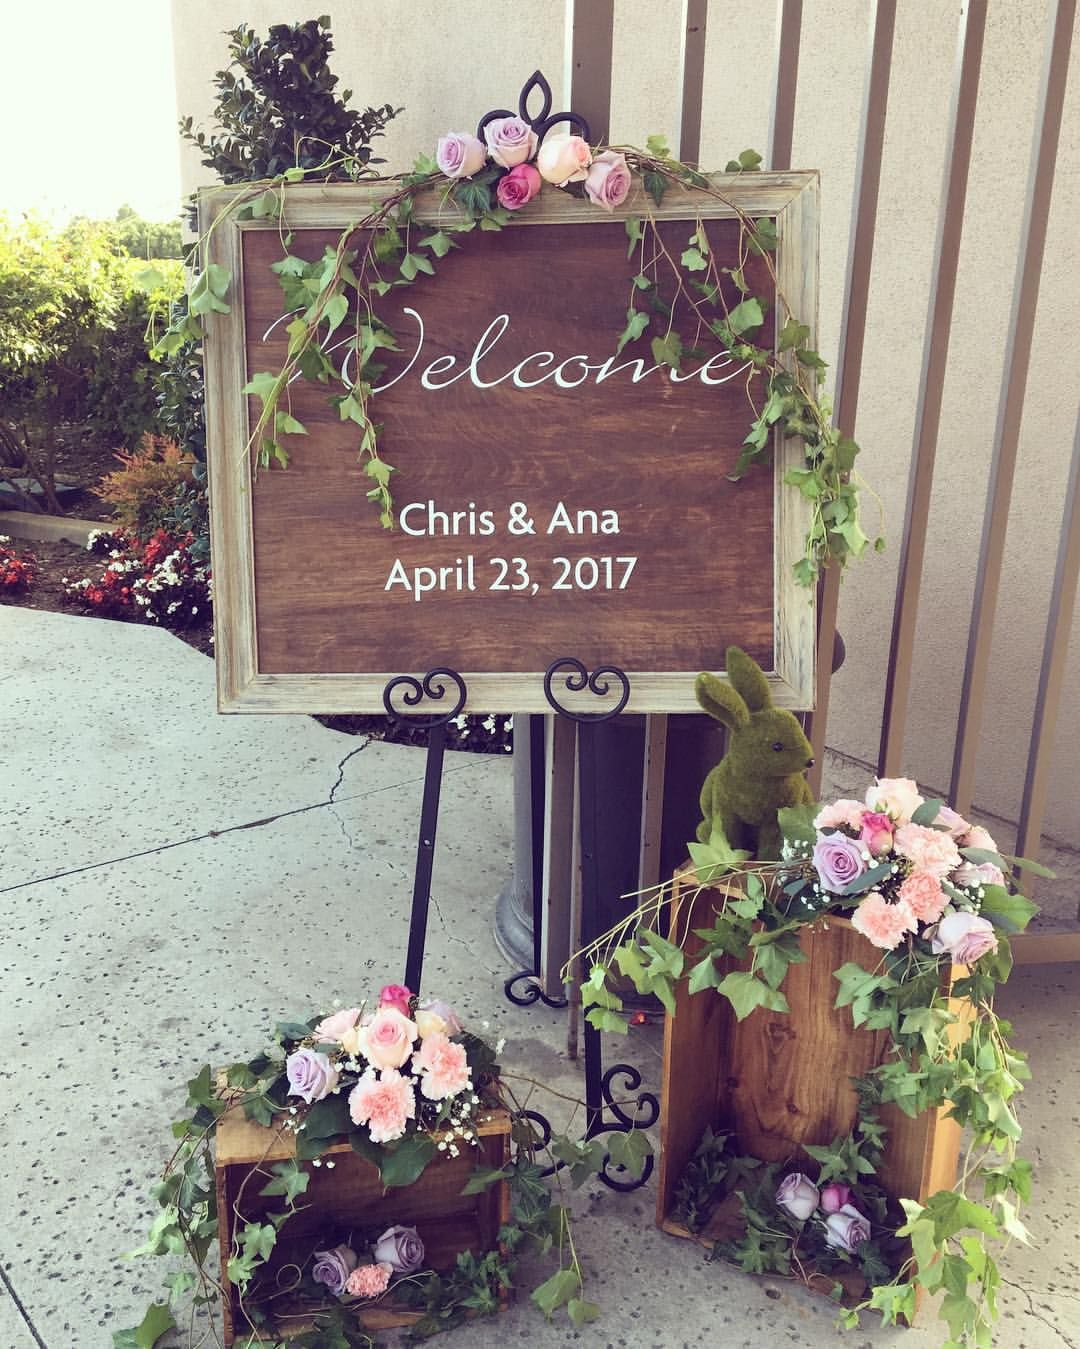 Wedding Ceremony And Reception Edmonton: {Pretty} Details From Yesterday's Beautiful Wedding